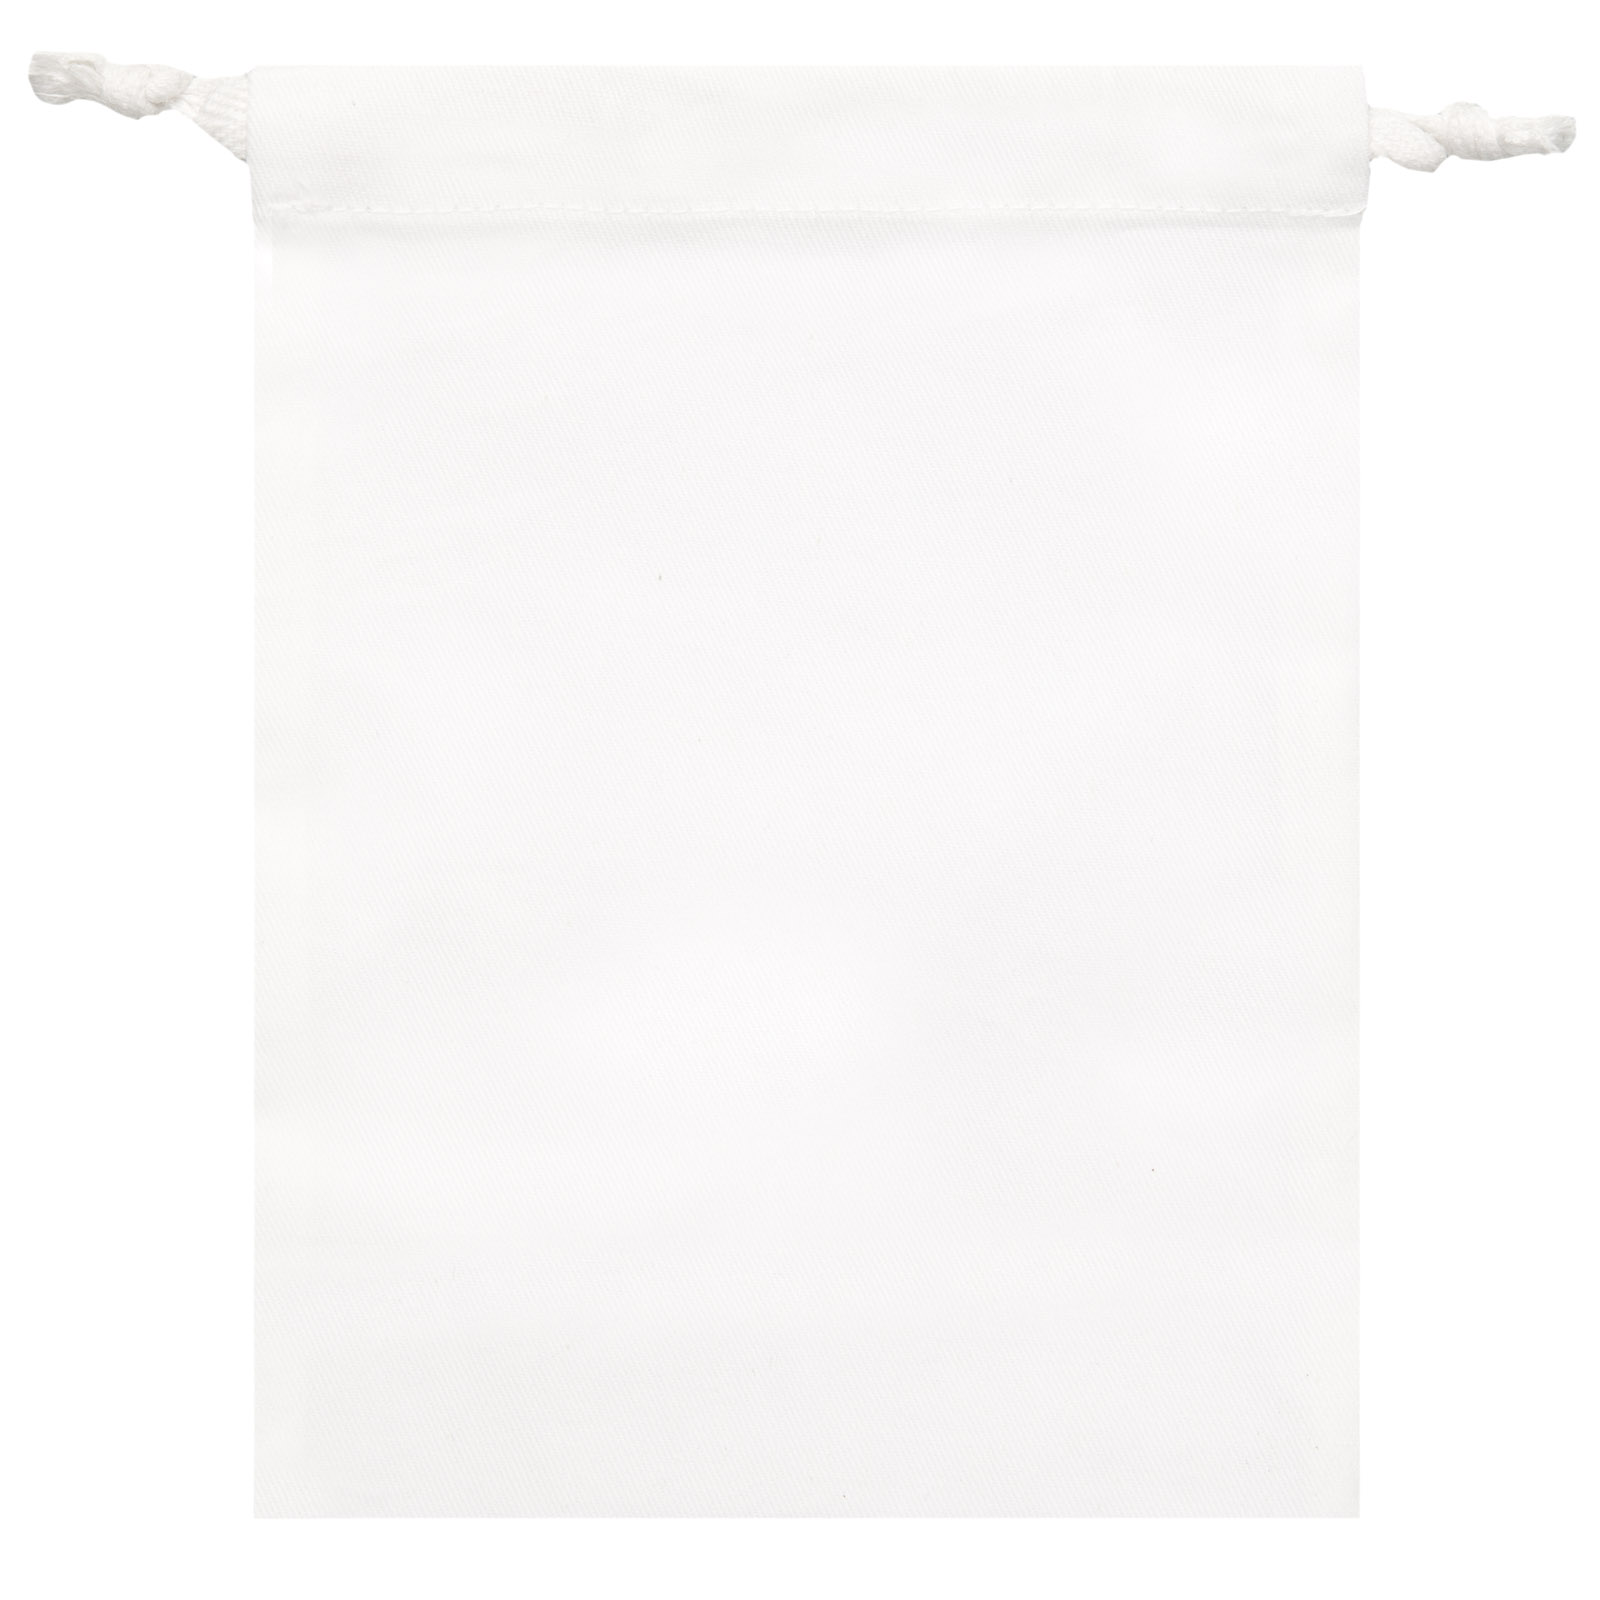 """Signature Napkins Face Covering Storage Pouch – 8"""" x 6"""" Drawstring Bag - 100% Cotton – 10 x Pack - White"""